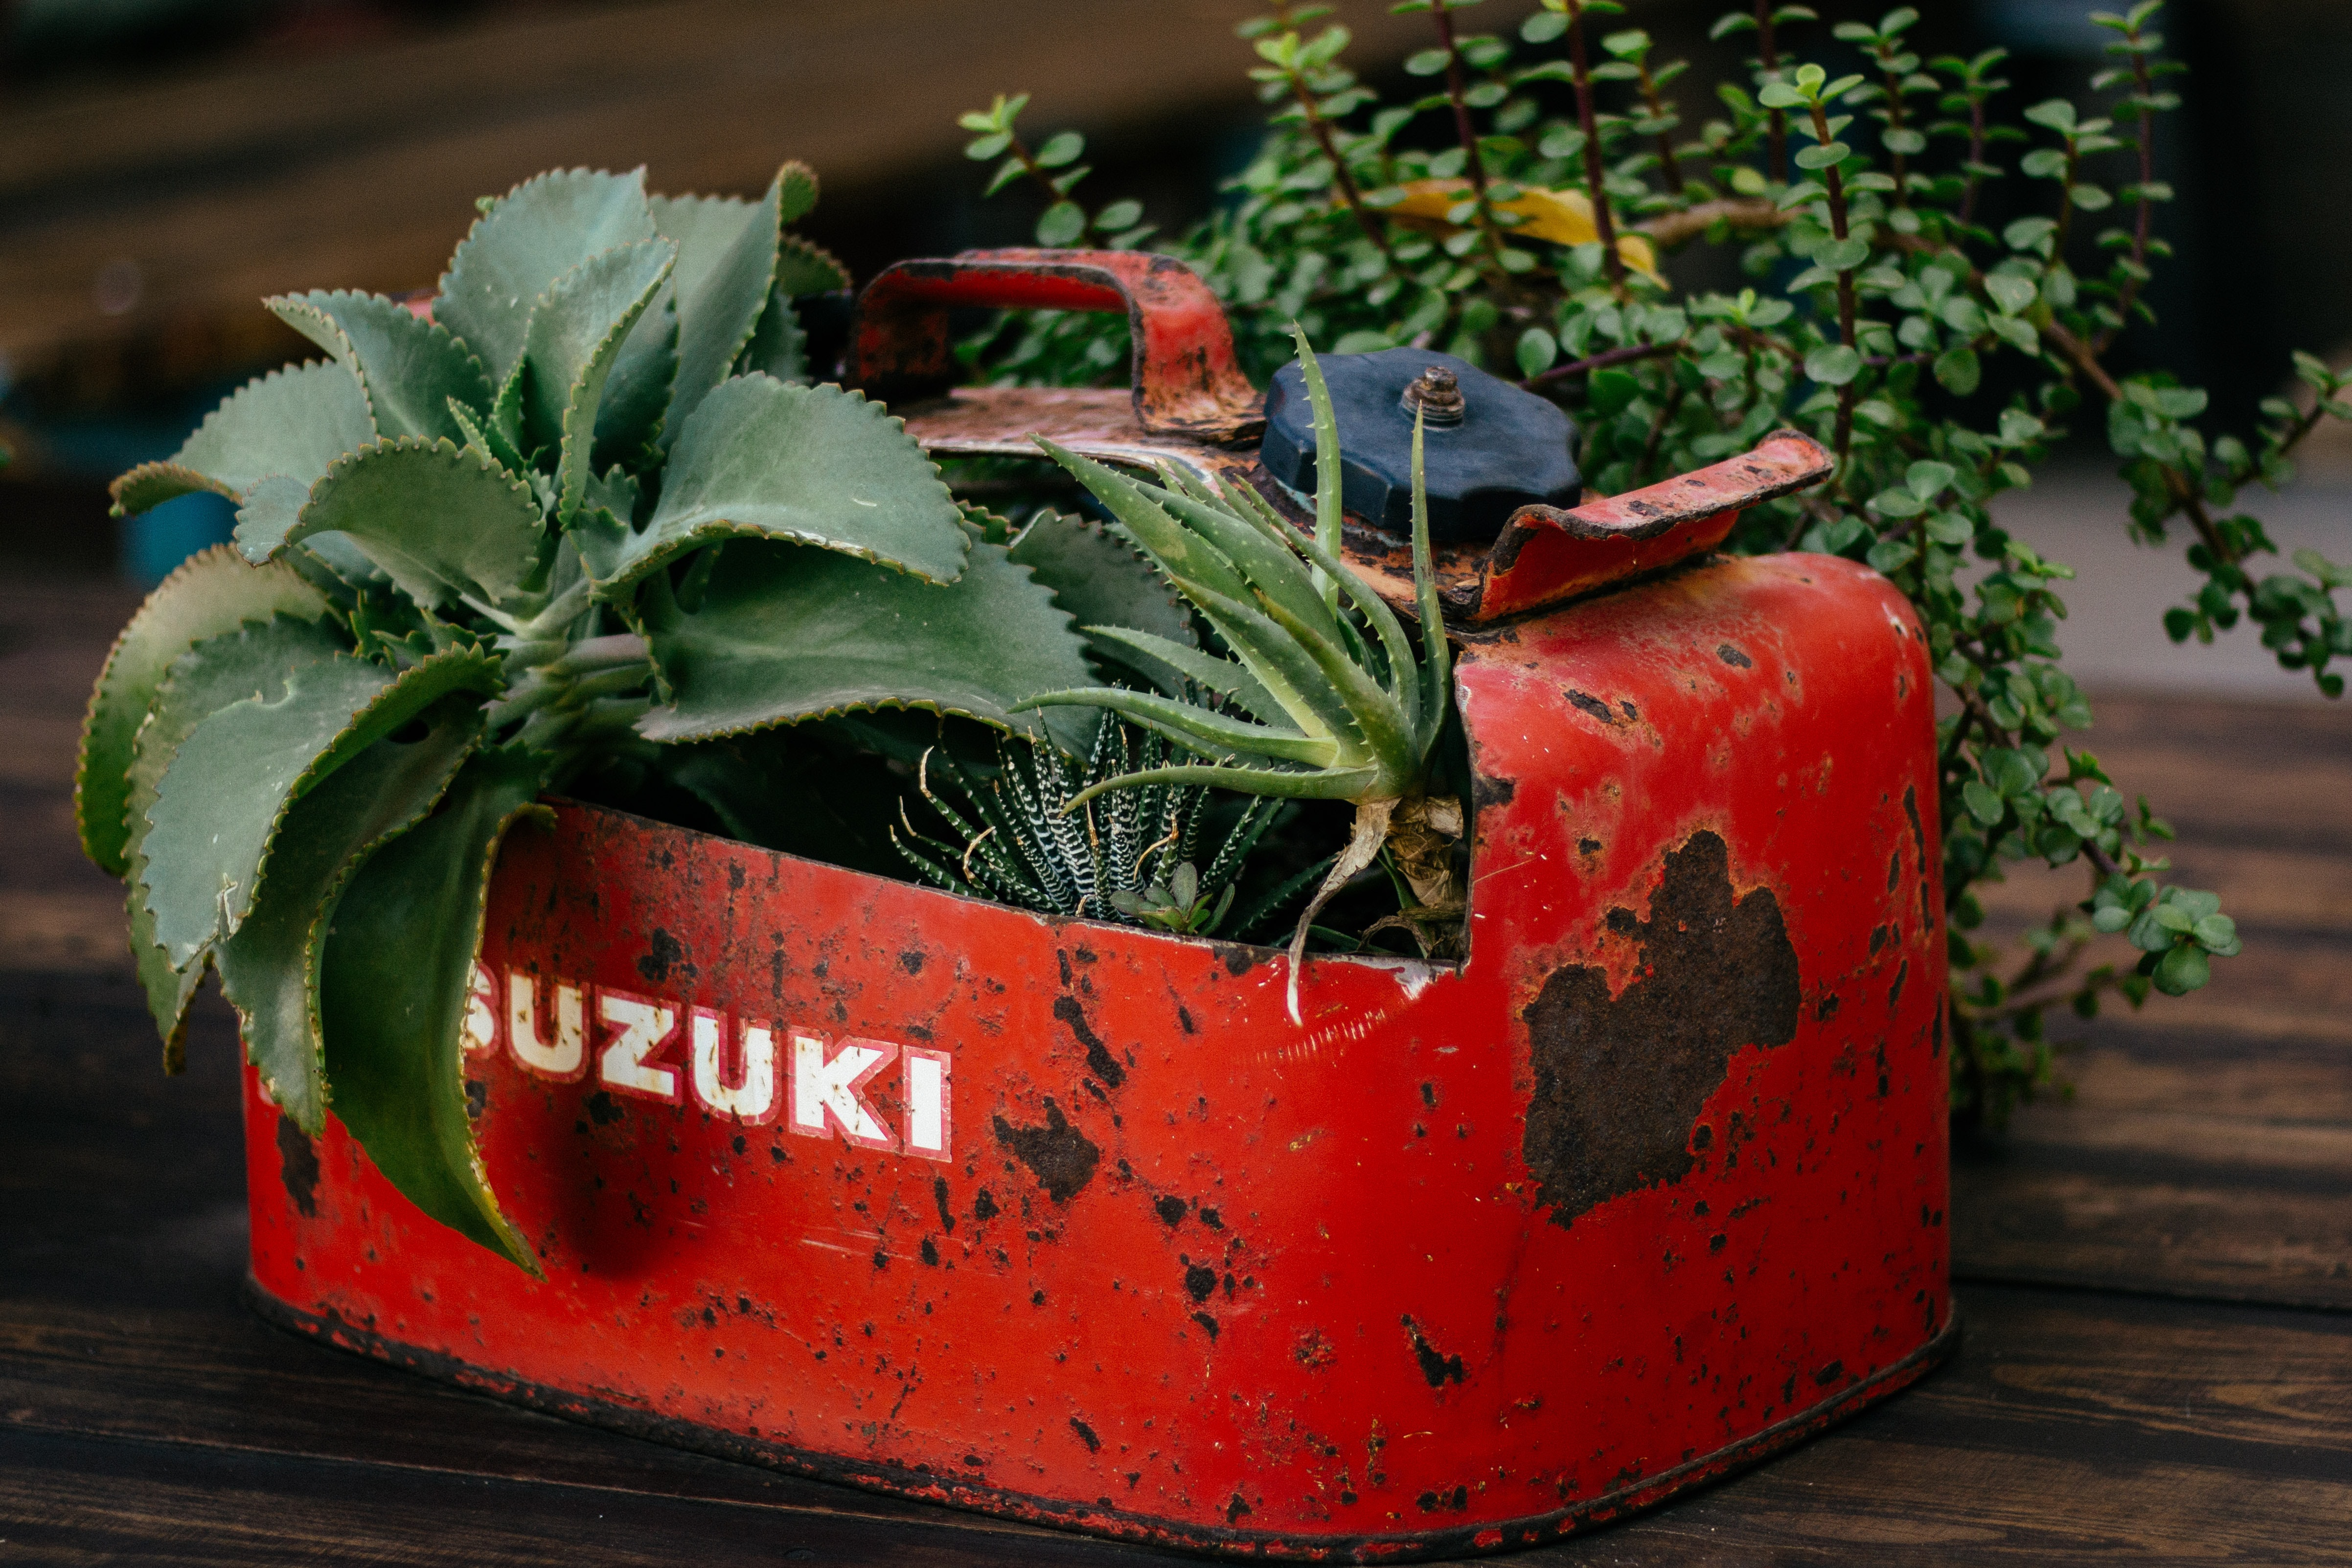 closeup photo of green leafed plant on red Suzuki gasoline tank pot